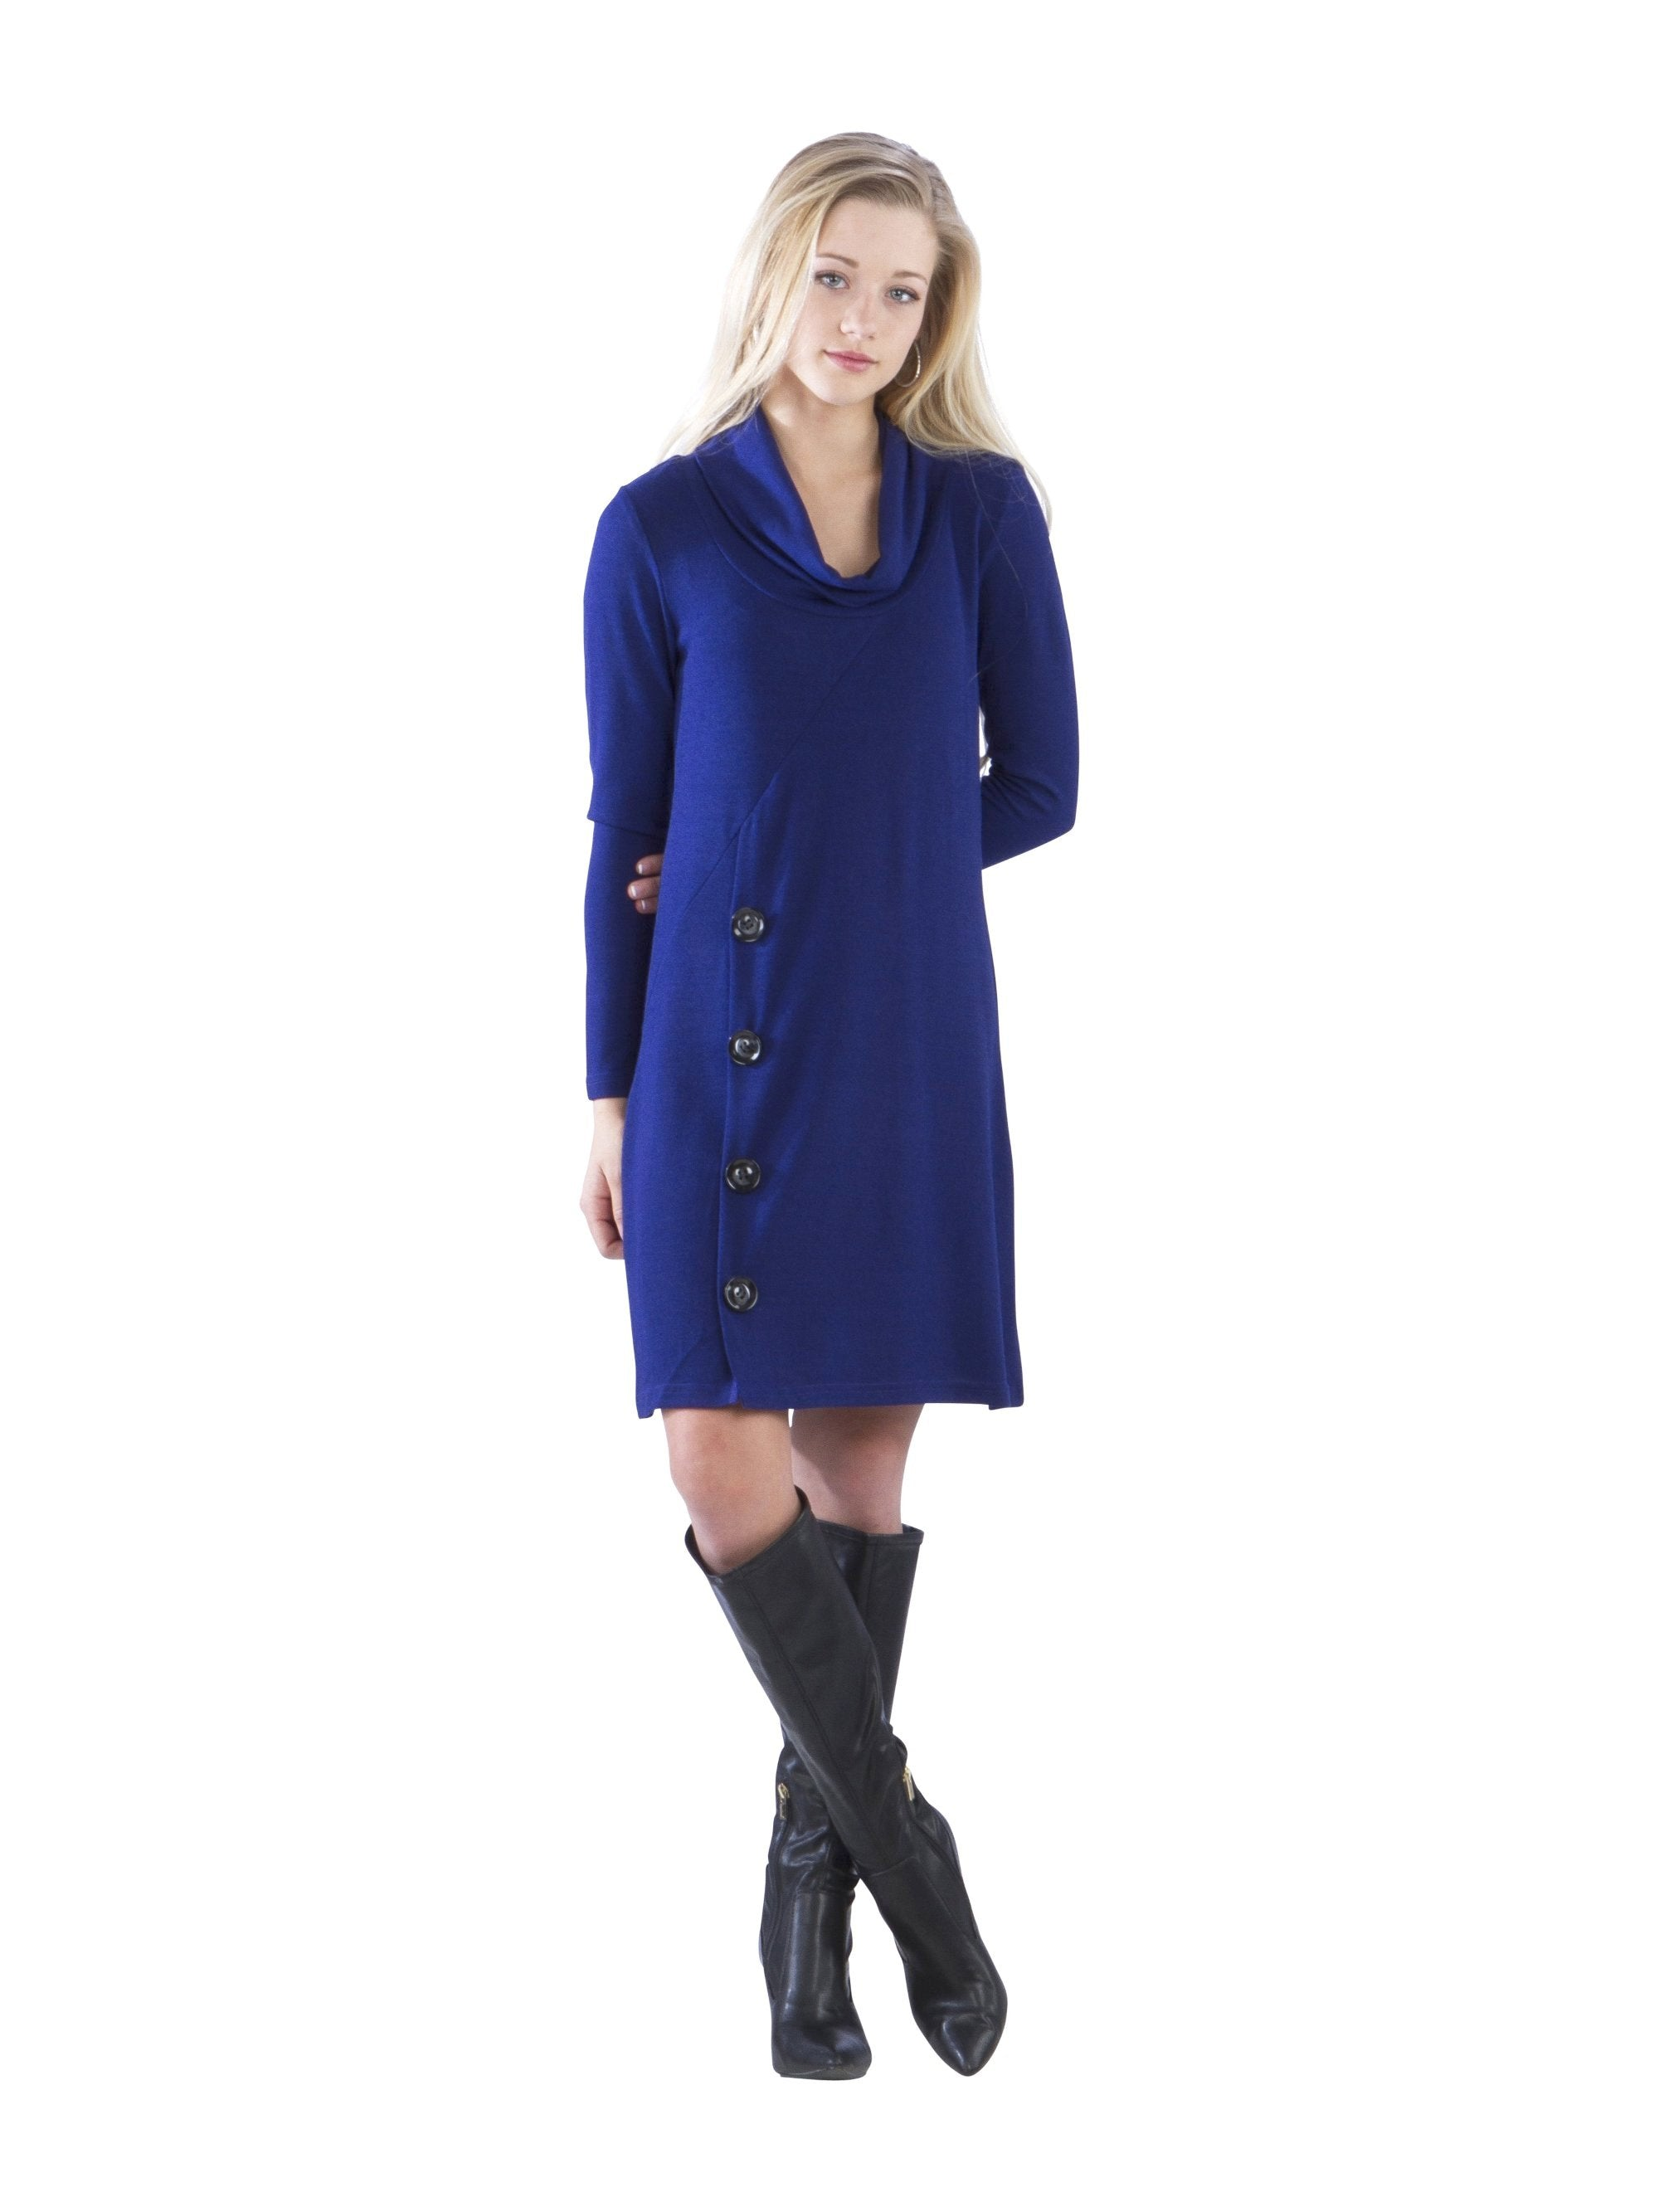 Cowl Neck Sweater Dress with Buttons